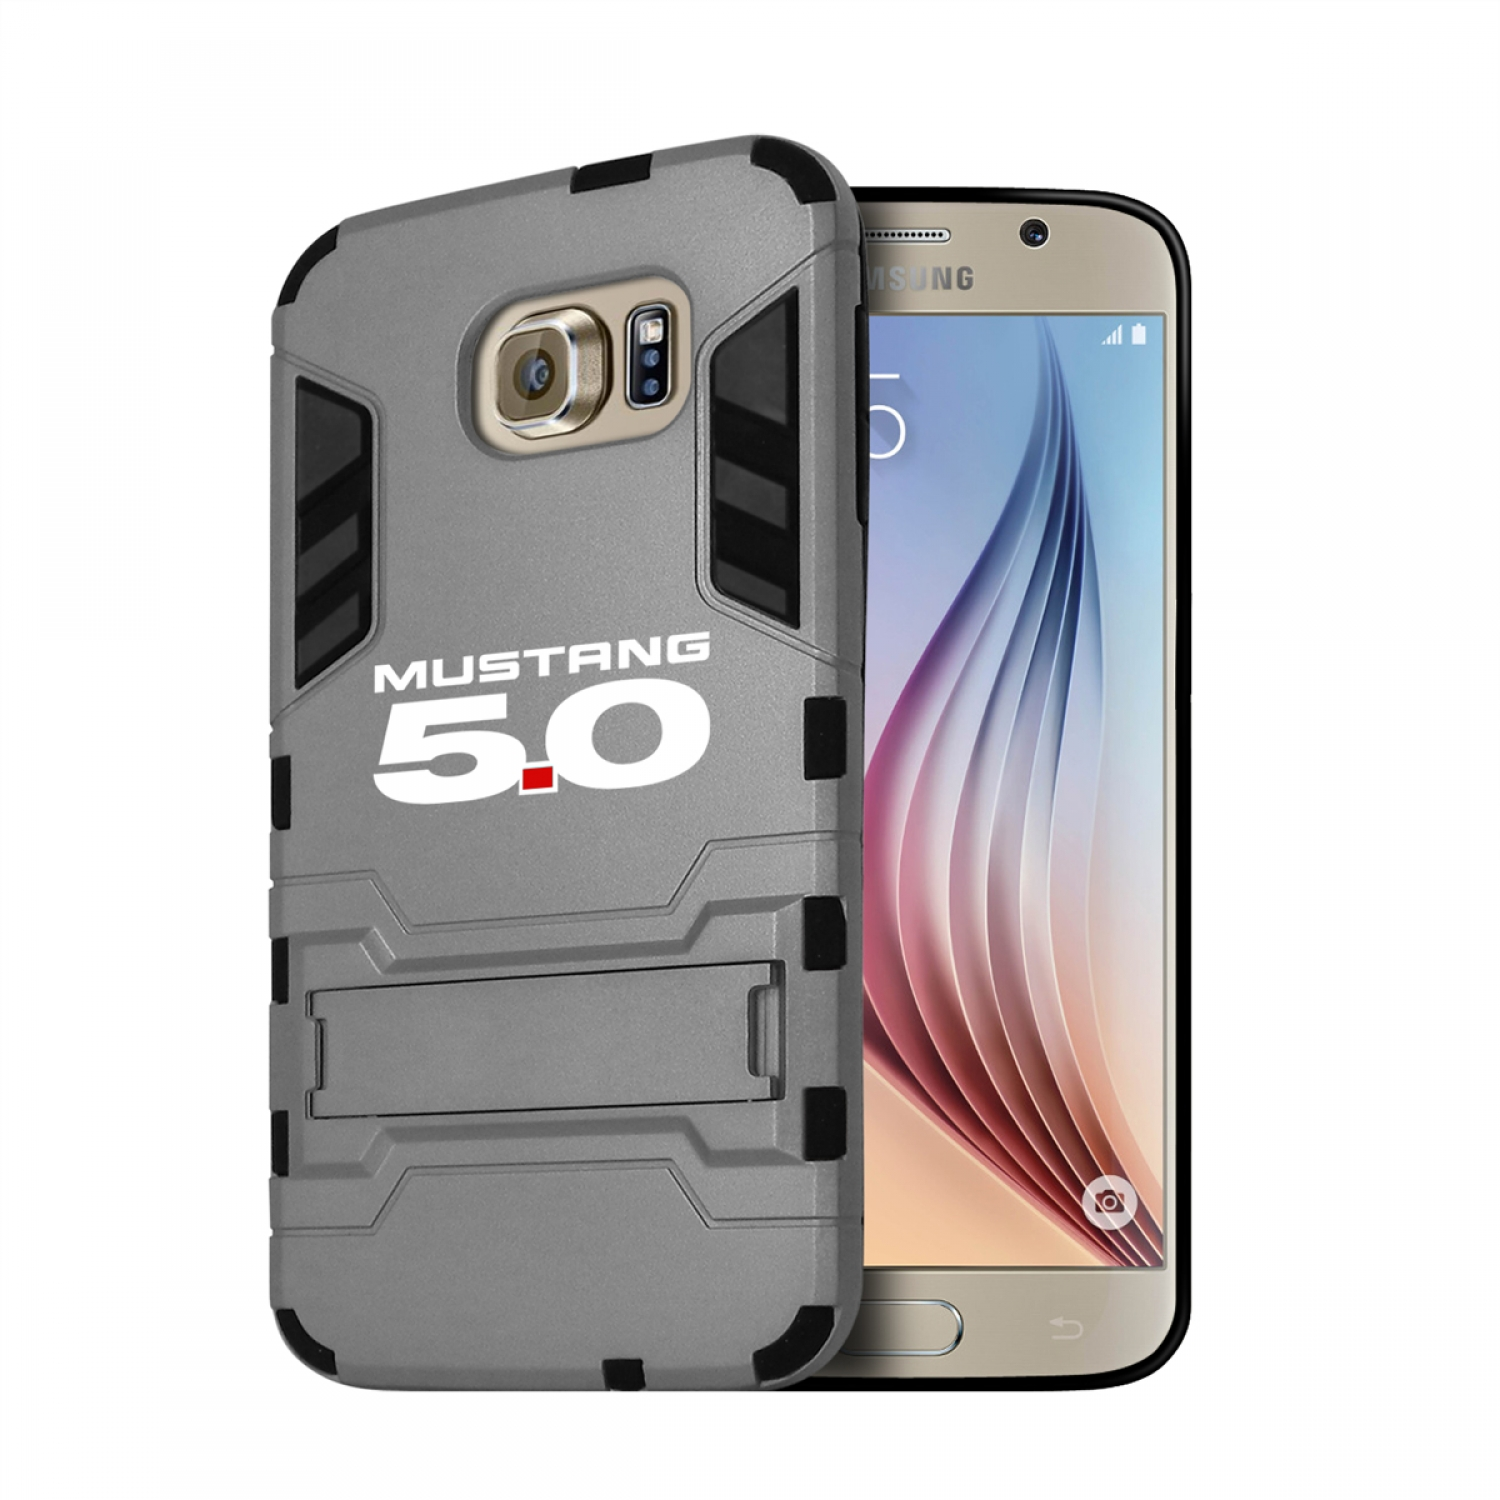 Ford Mustang 5.0 Samsung Galaxy S6 Shockproof TPU ABS Hybrid Gray Phone Case